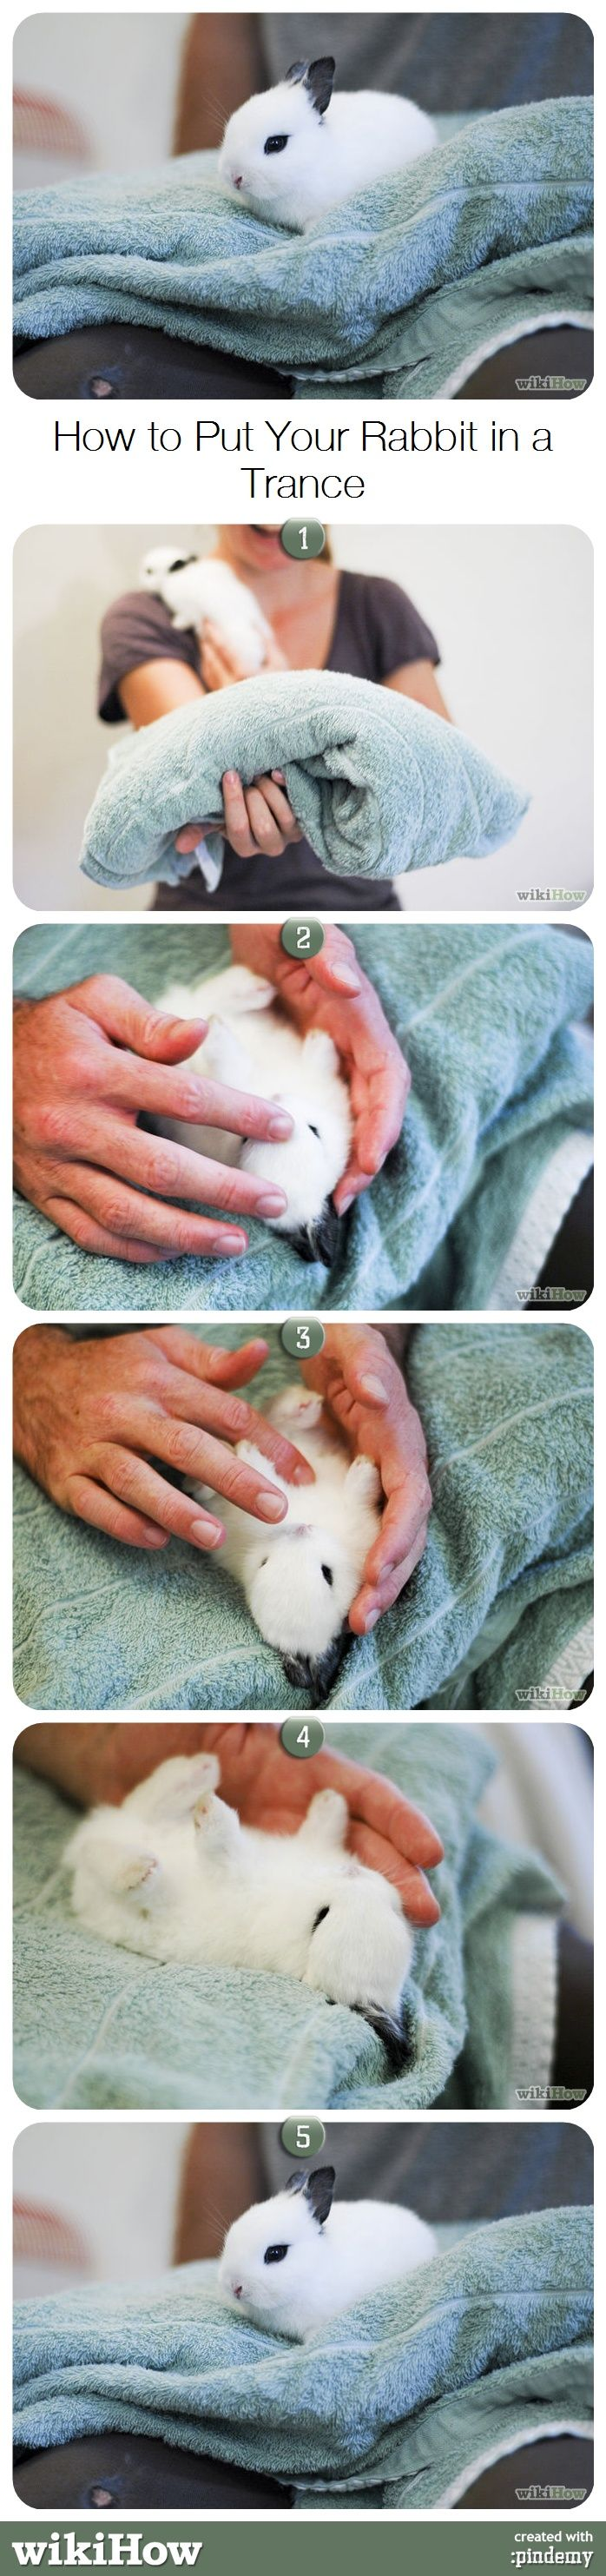 25+ Best Ideas About Bunny Care On Pinterest  Pet Bunny Rabbits, Caring  For Rabbits And Pet Rabbit